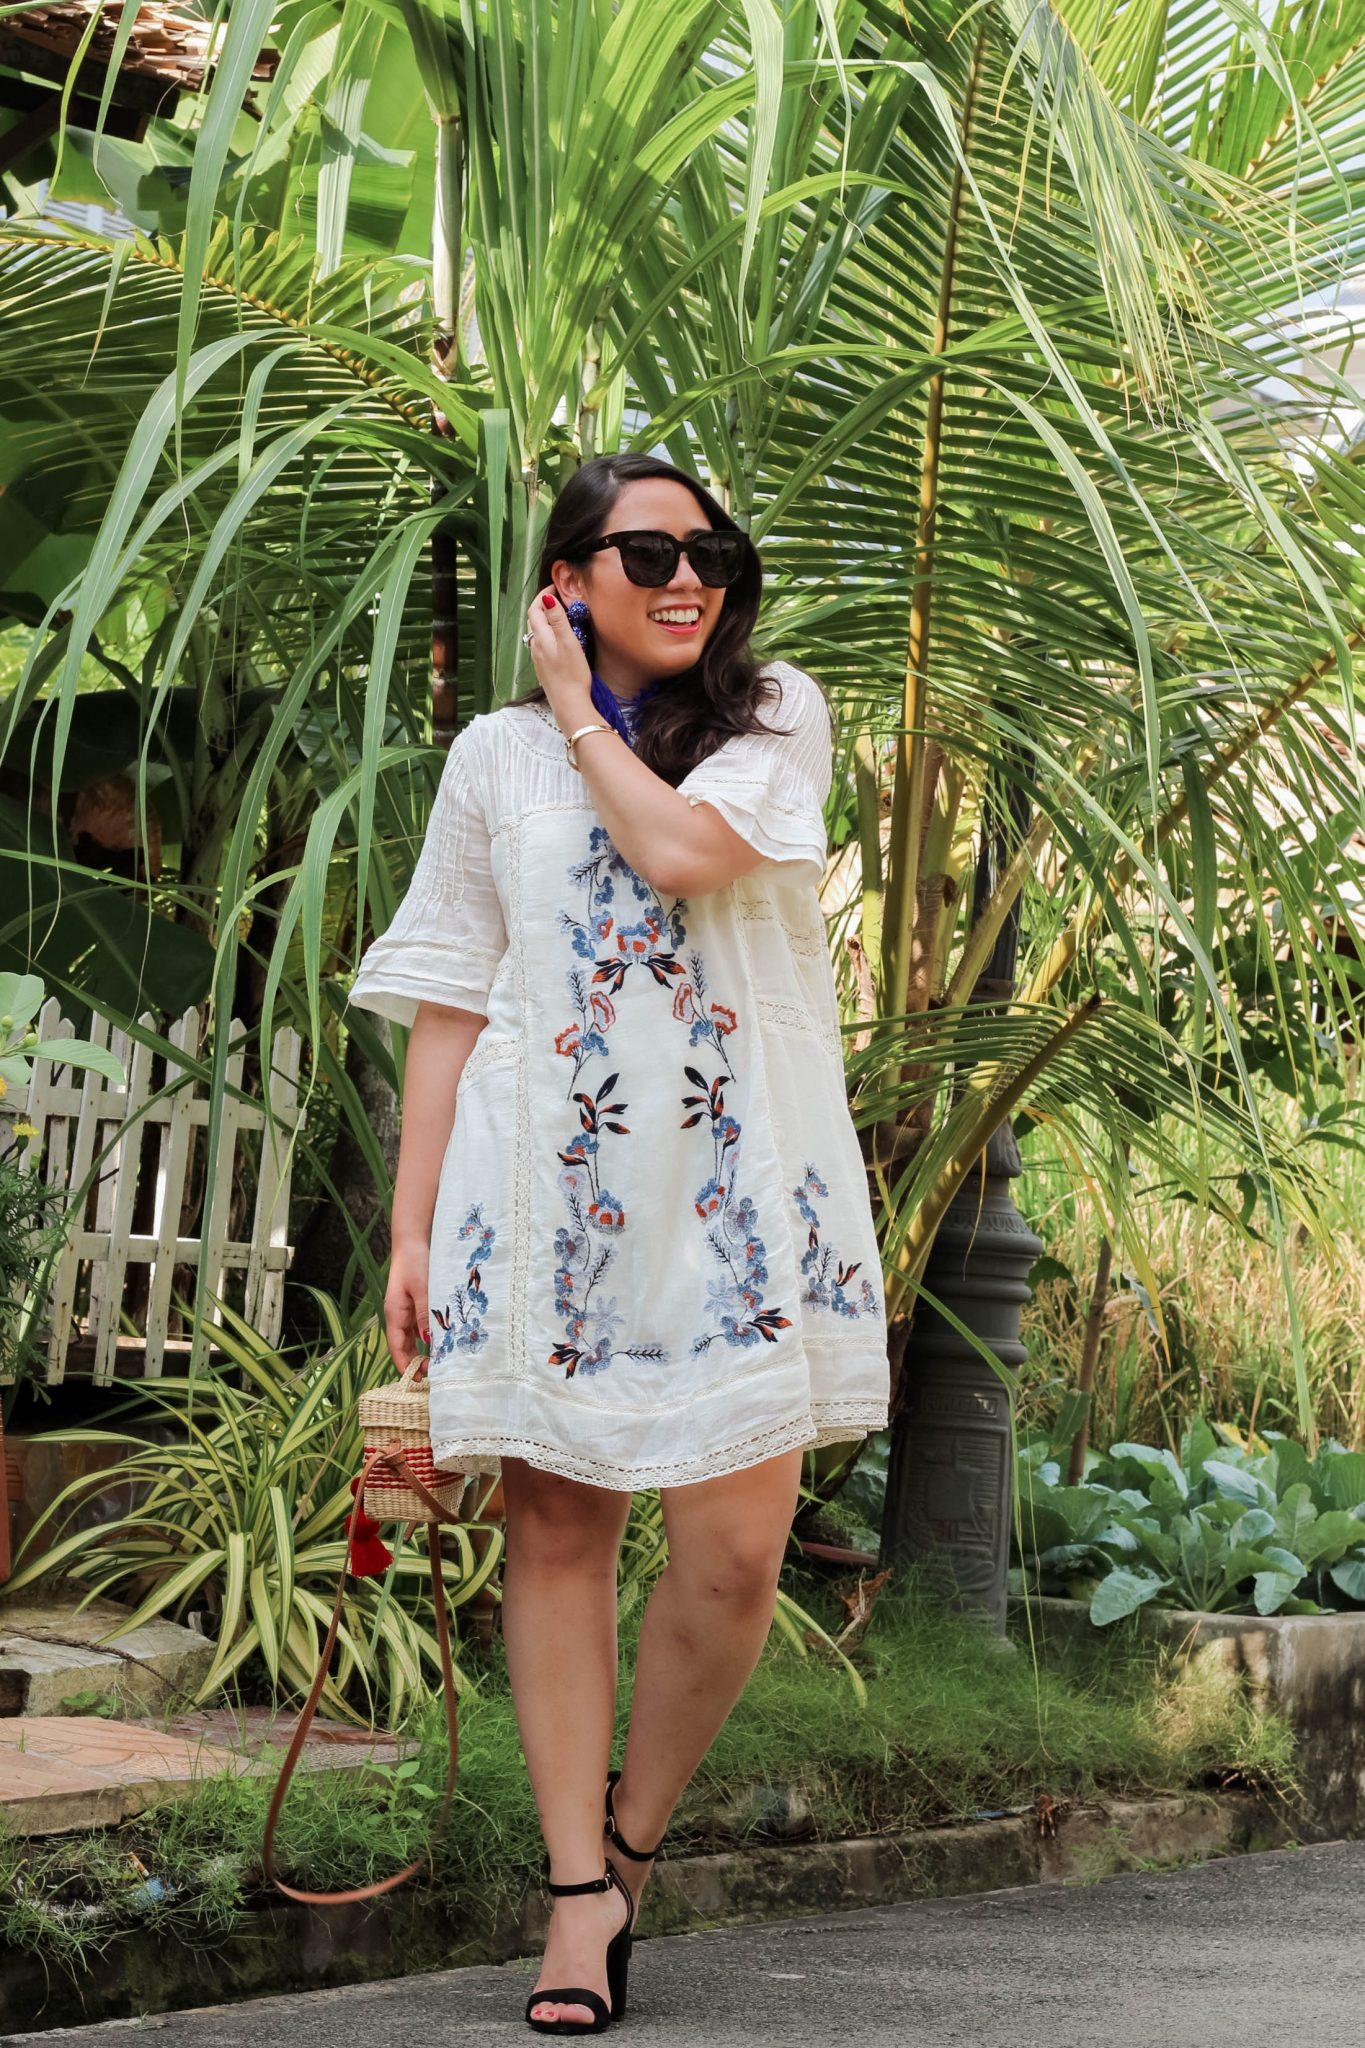 'Perfectly Victorian' Minidress FREE PEOPLE LIVE LAUGH LINDA - A Little White Mini Dress in Paradise by popular New York fashion blogger Live Laugh Linda